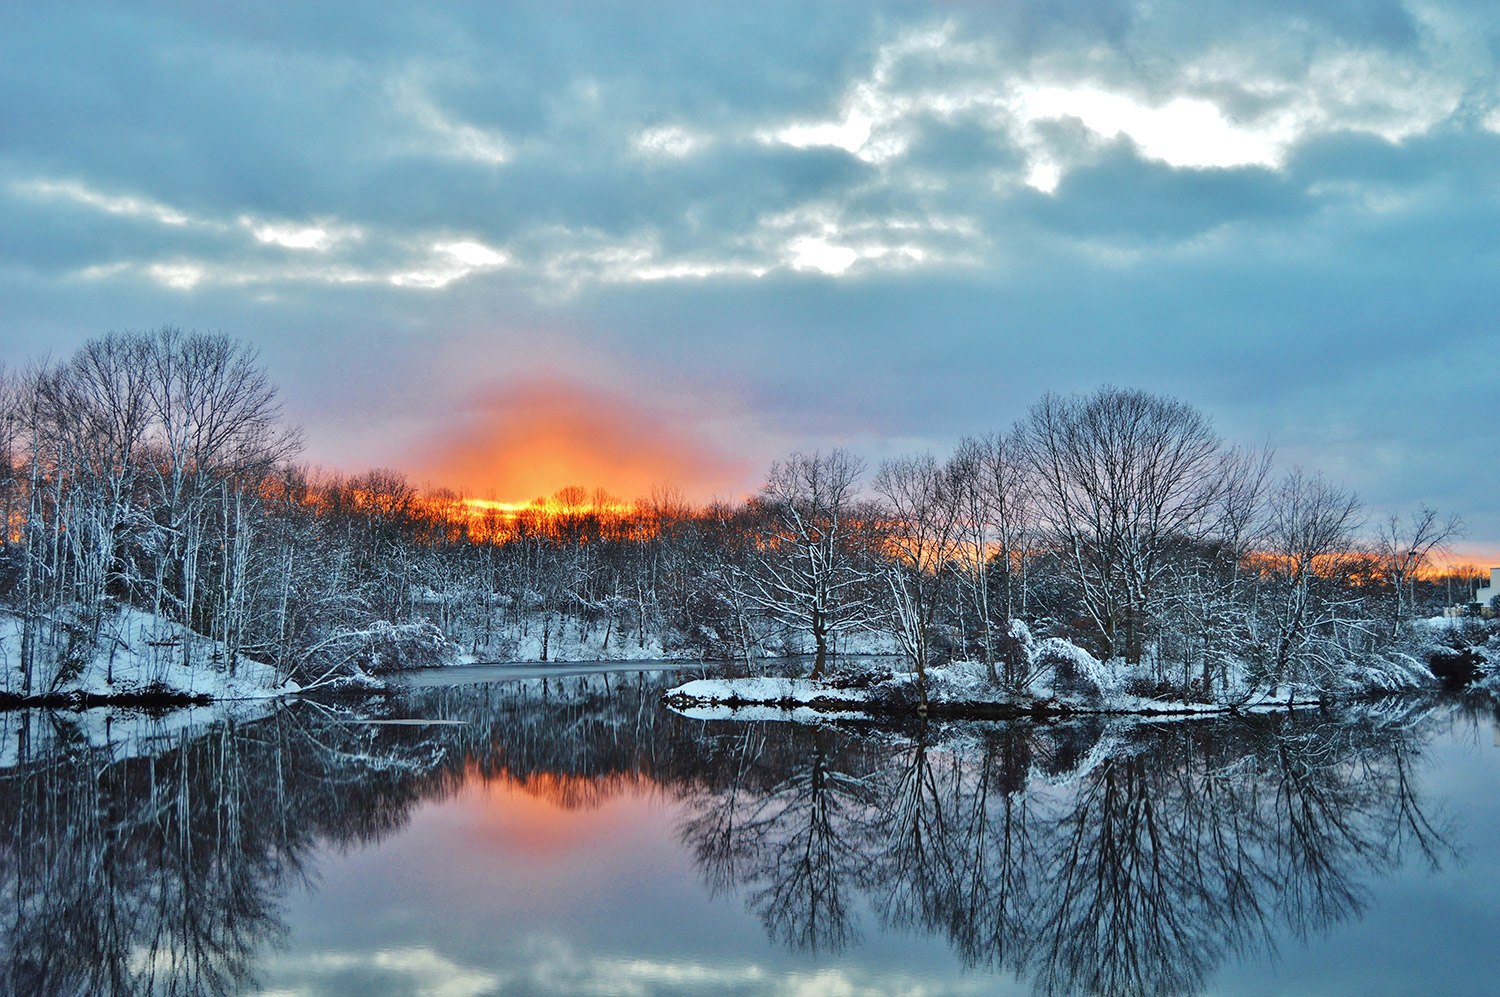 Clarks Pond in South Portland turns into a reflecting pool during a recent sunset when North Yarmouth's Brian K. Lovering was there to enjoy the frosty splendor and share this beautiful image.